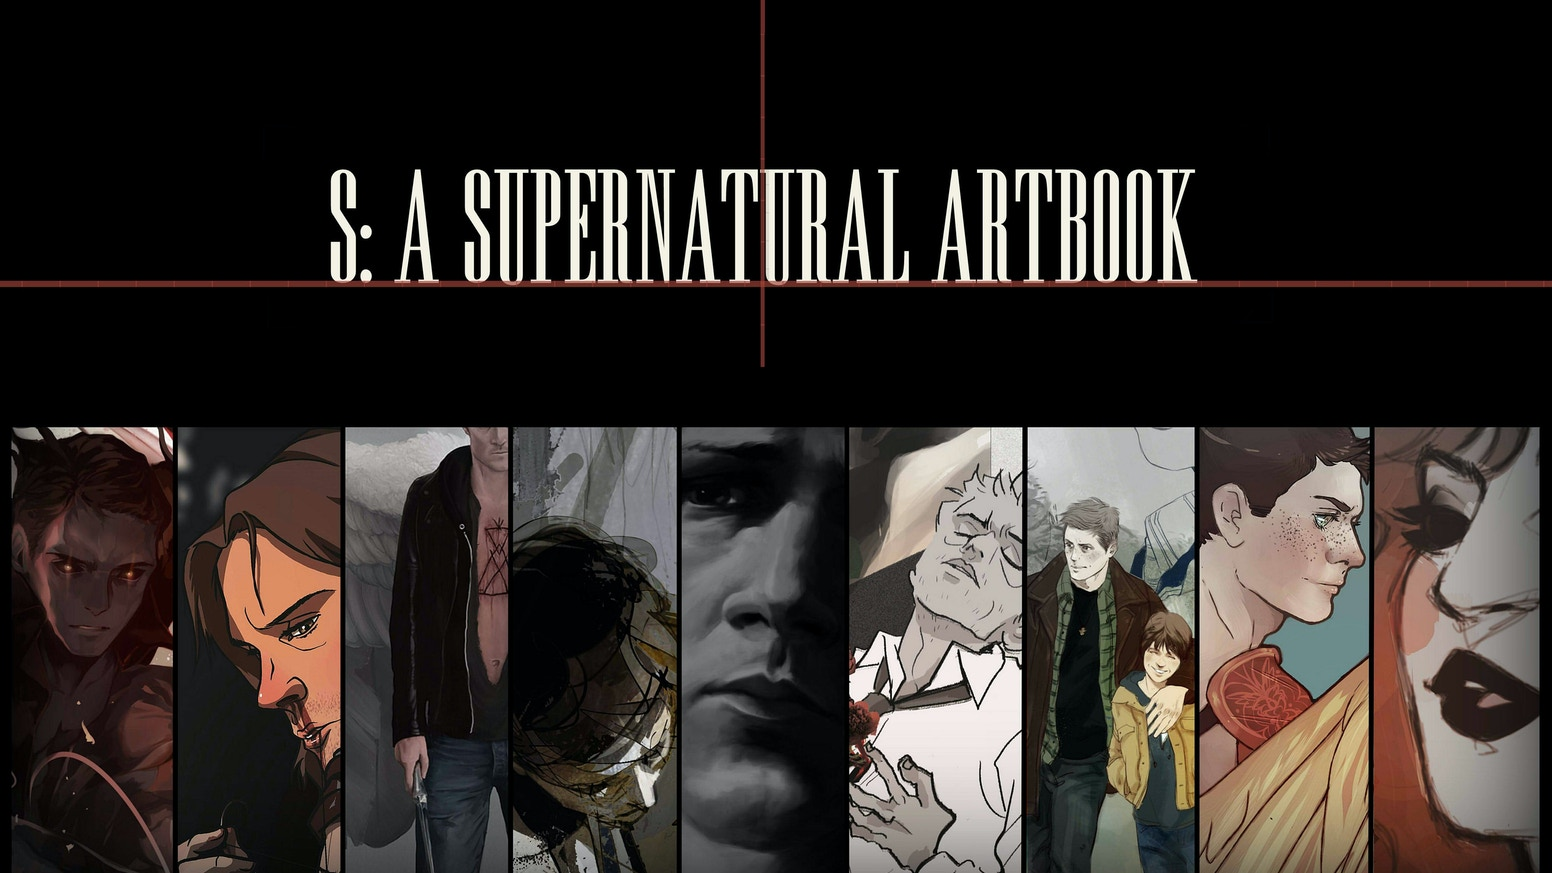 S: a Supernatural Artbook is an artbook in tribute to the CW show, featuring never-before-seen artworks from over 30 talented artists.